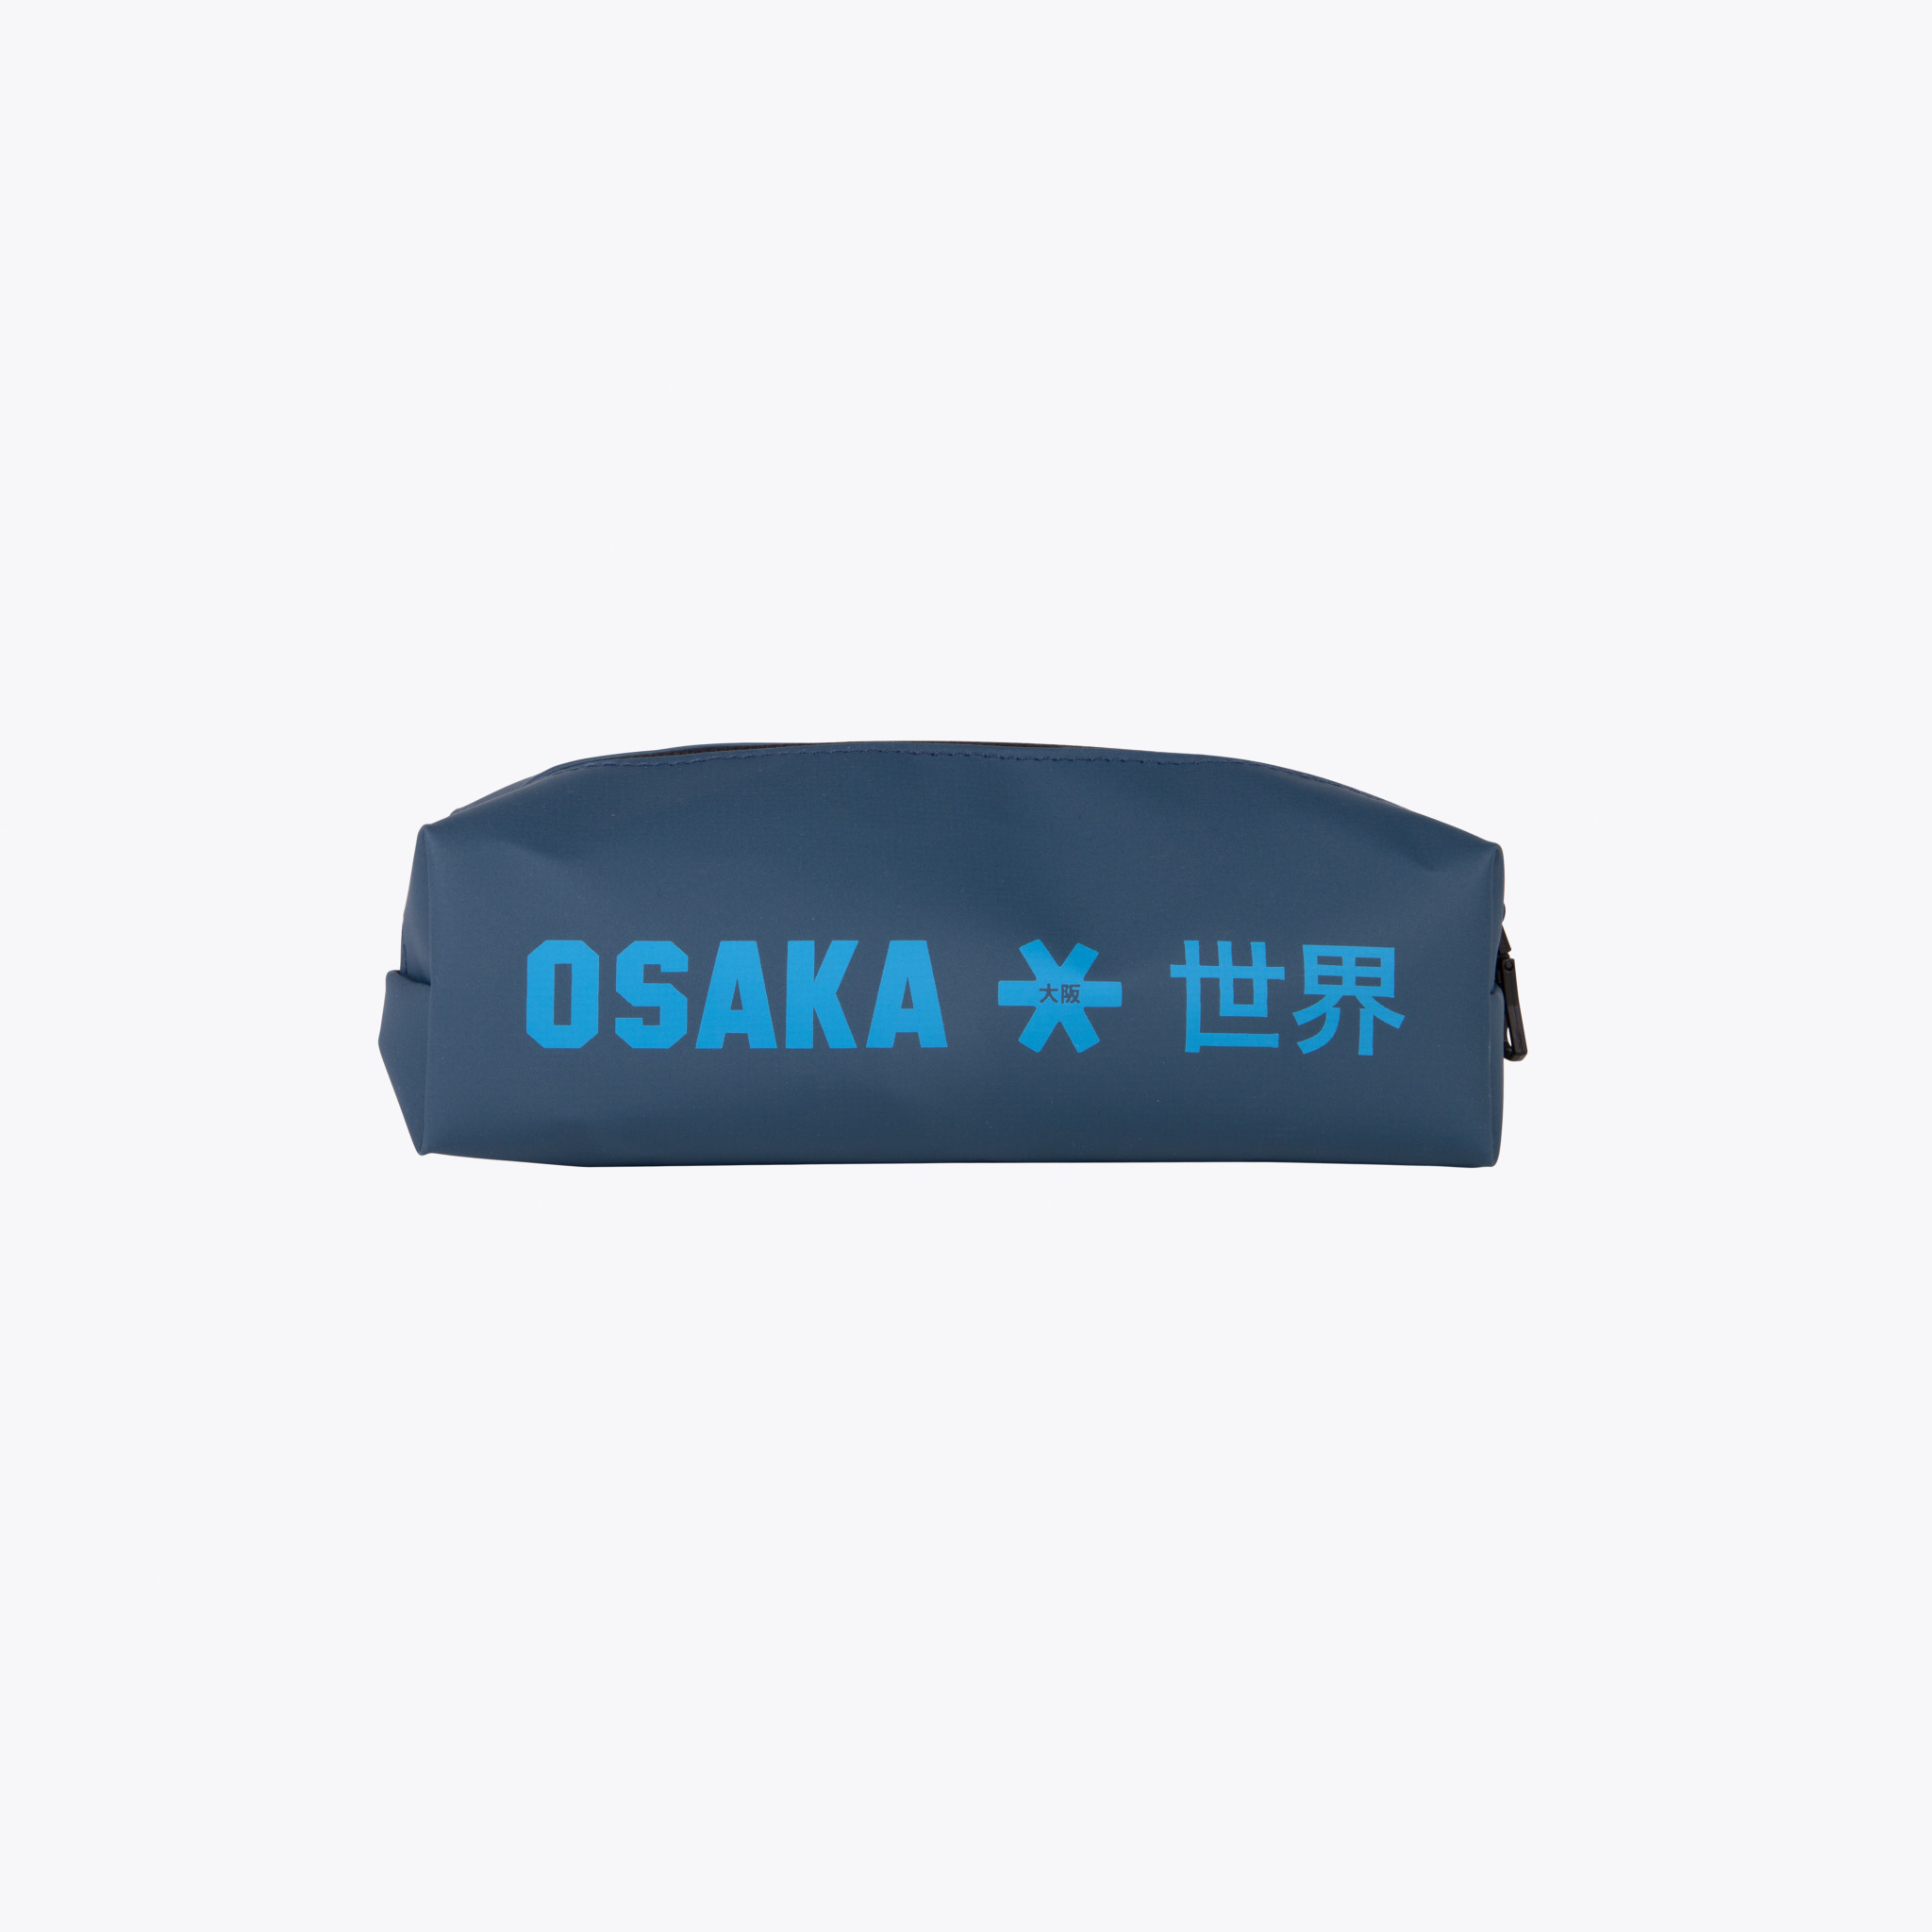 Babynamen Natuur Osaka Pro Tour Pencil Case Galaxy Navy